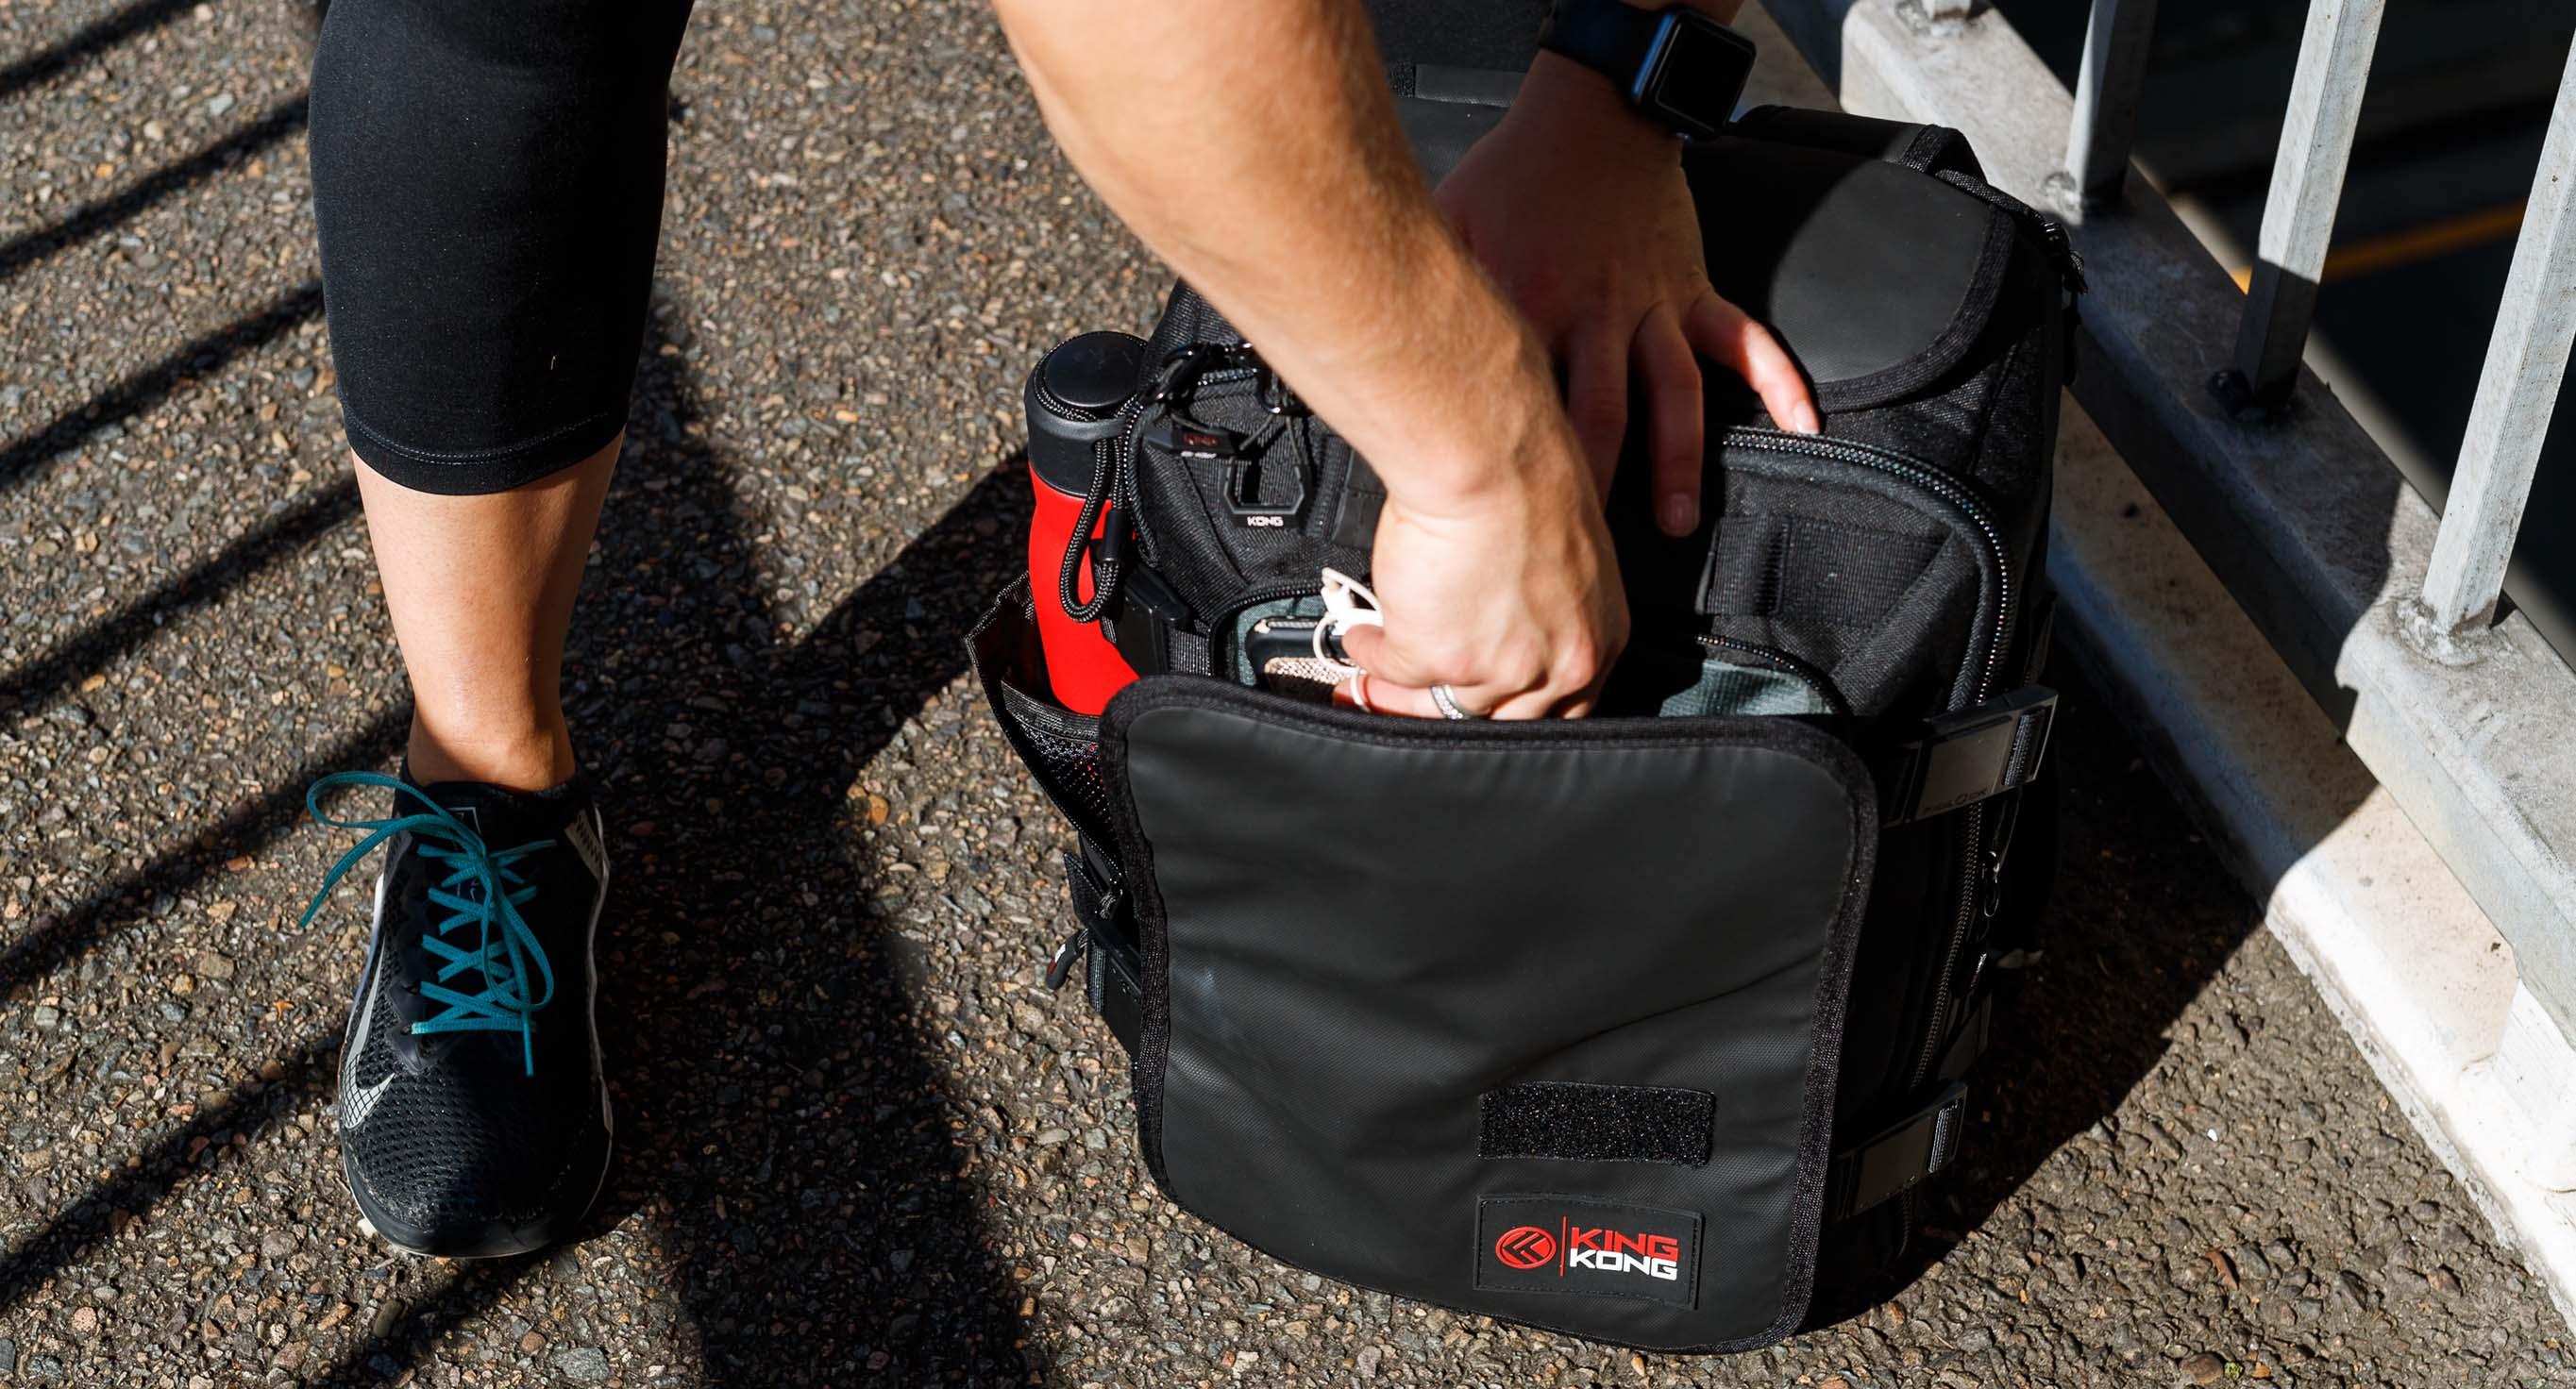 Organization in backpack with pockets and compartments